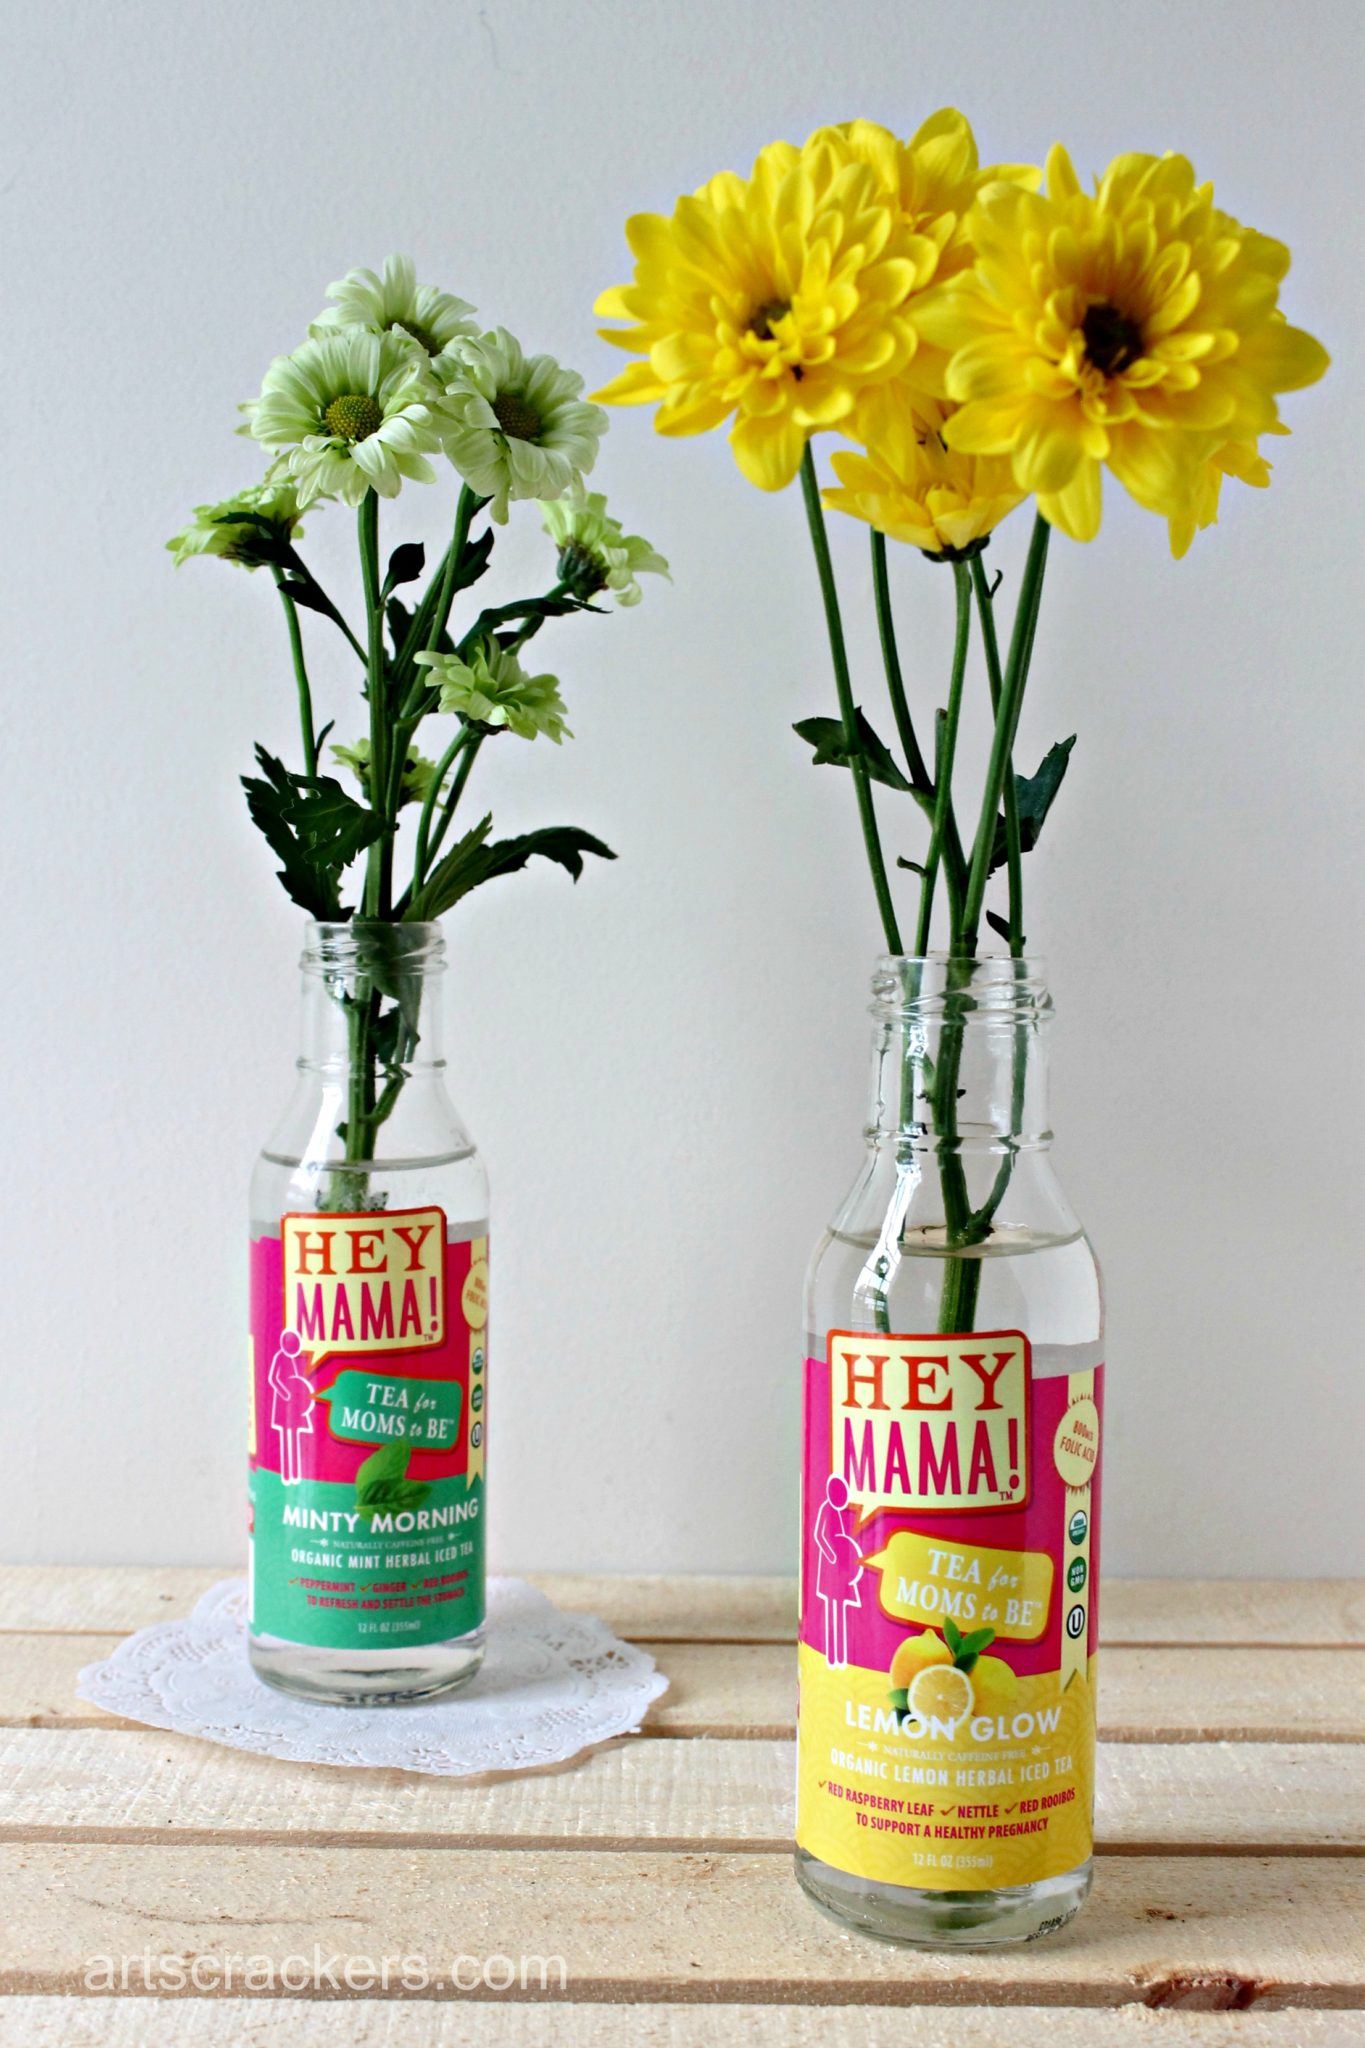 Hey Mama Teas Bottle Flower Vase